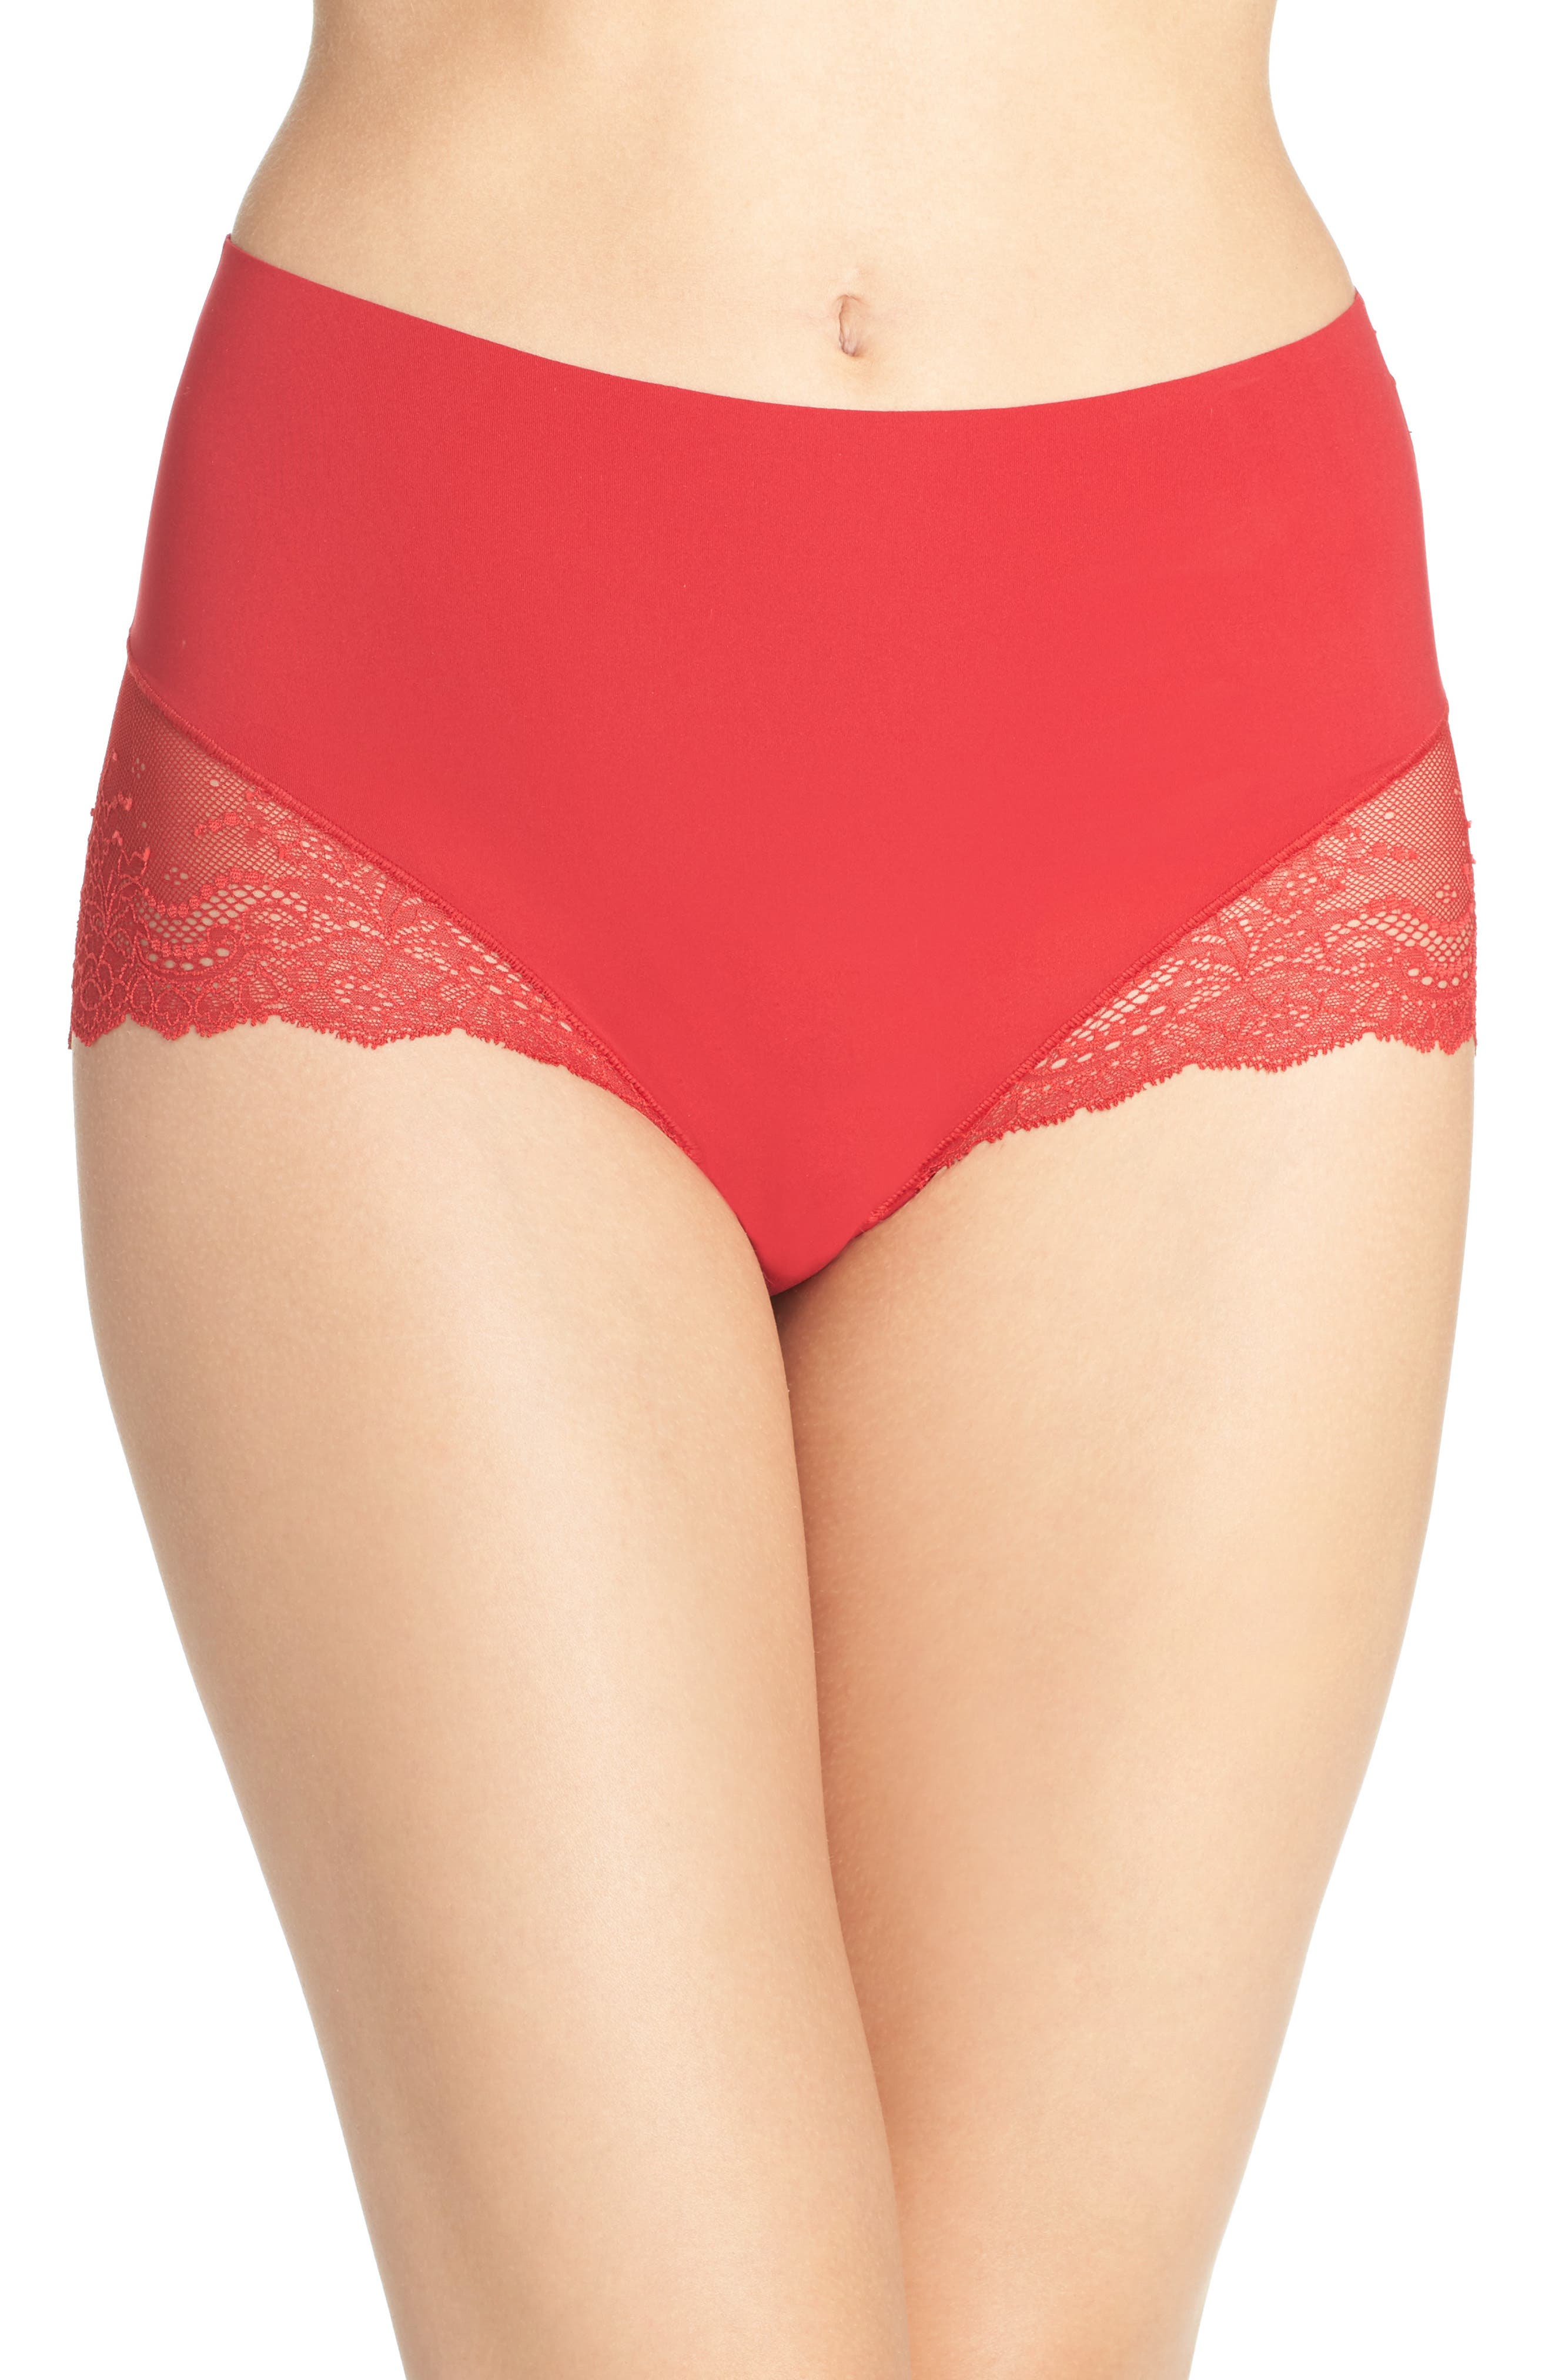 Alternate Image 1 Selected - SPANX® Undie-tectable Lace Hipster Panties